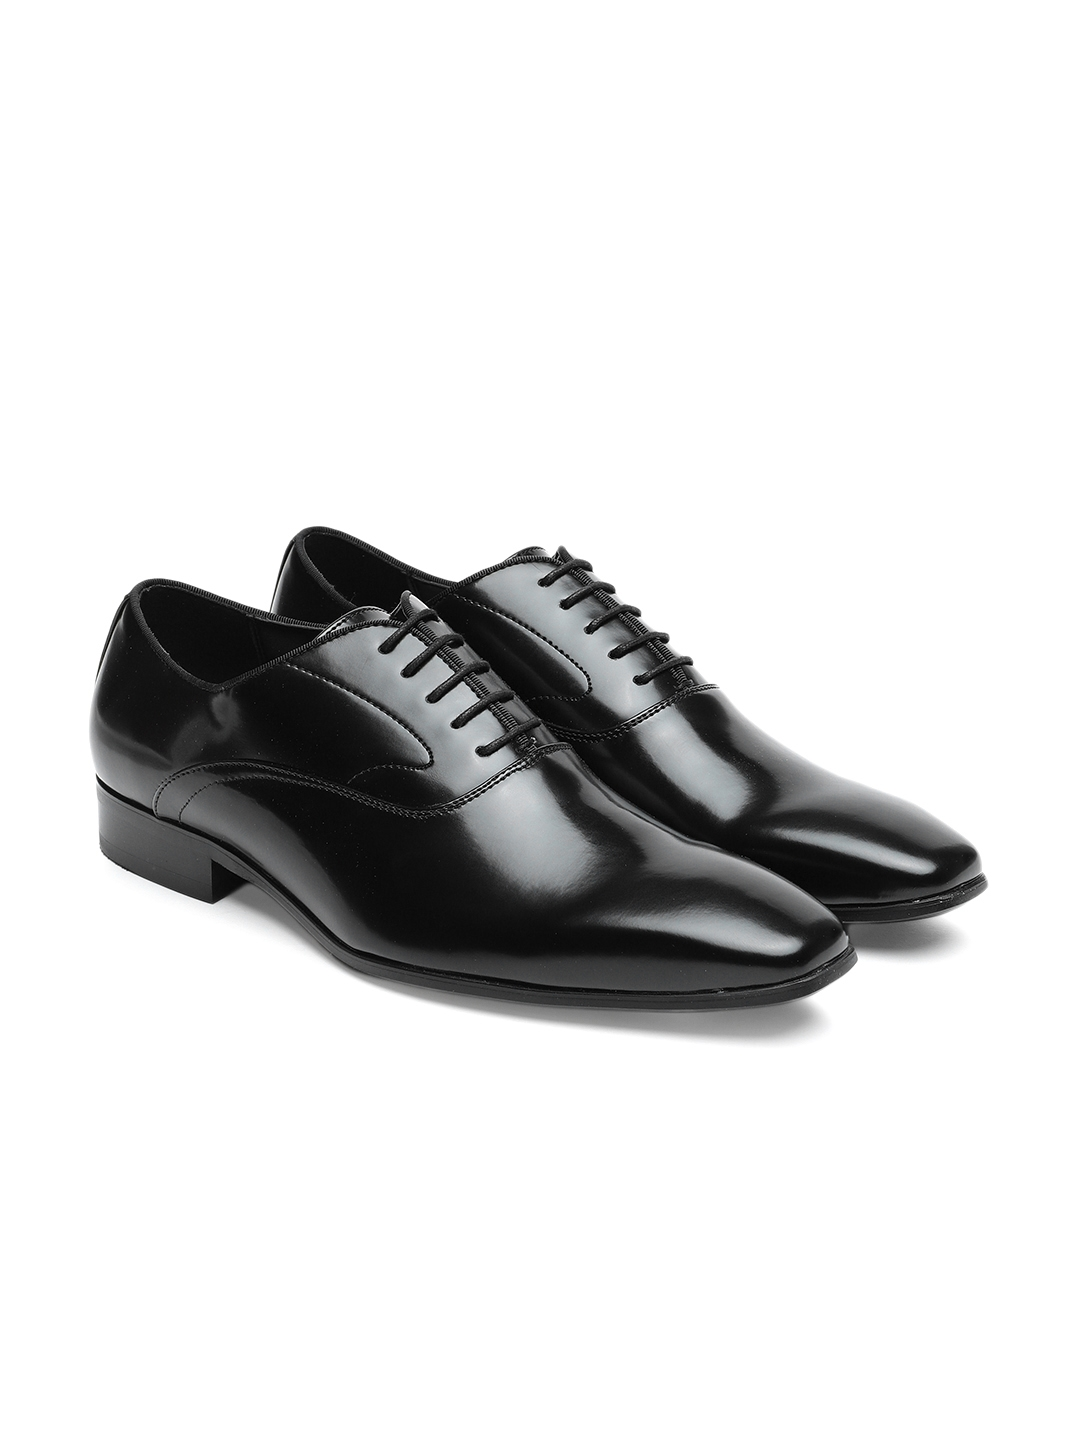 6891bb5adea Steve Madden Men Black MORRY Formal Leather Oxford Shoes